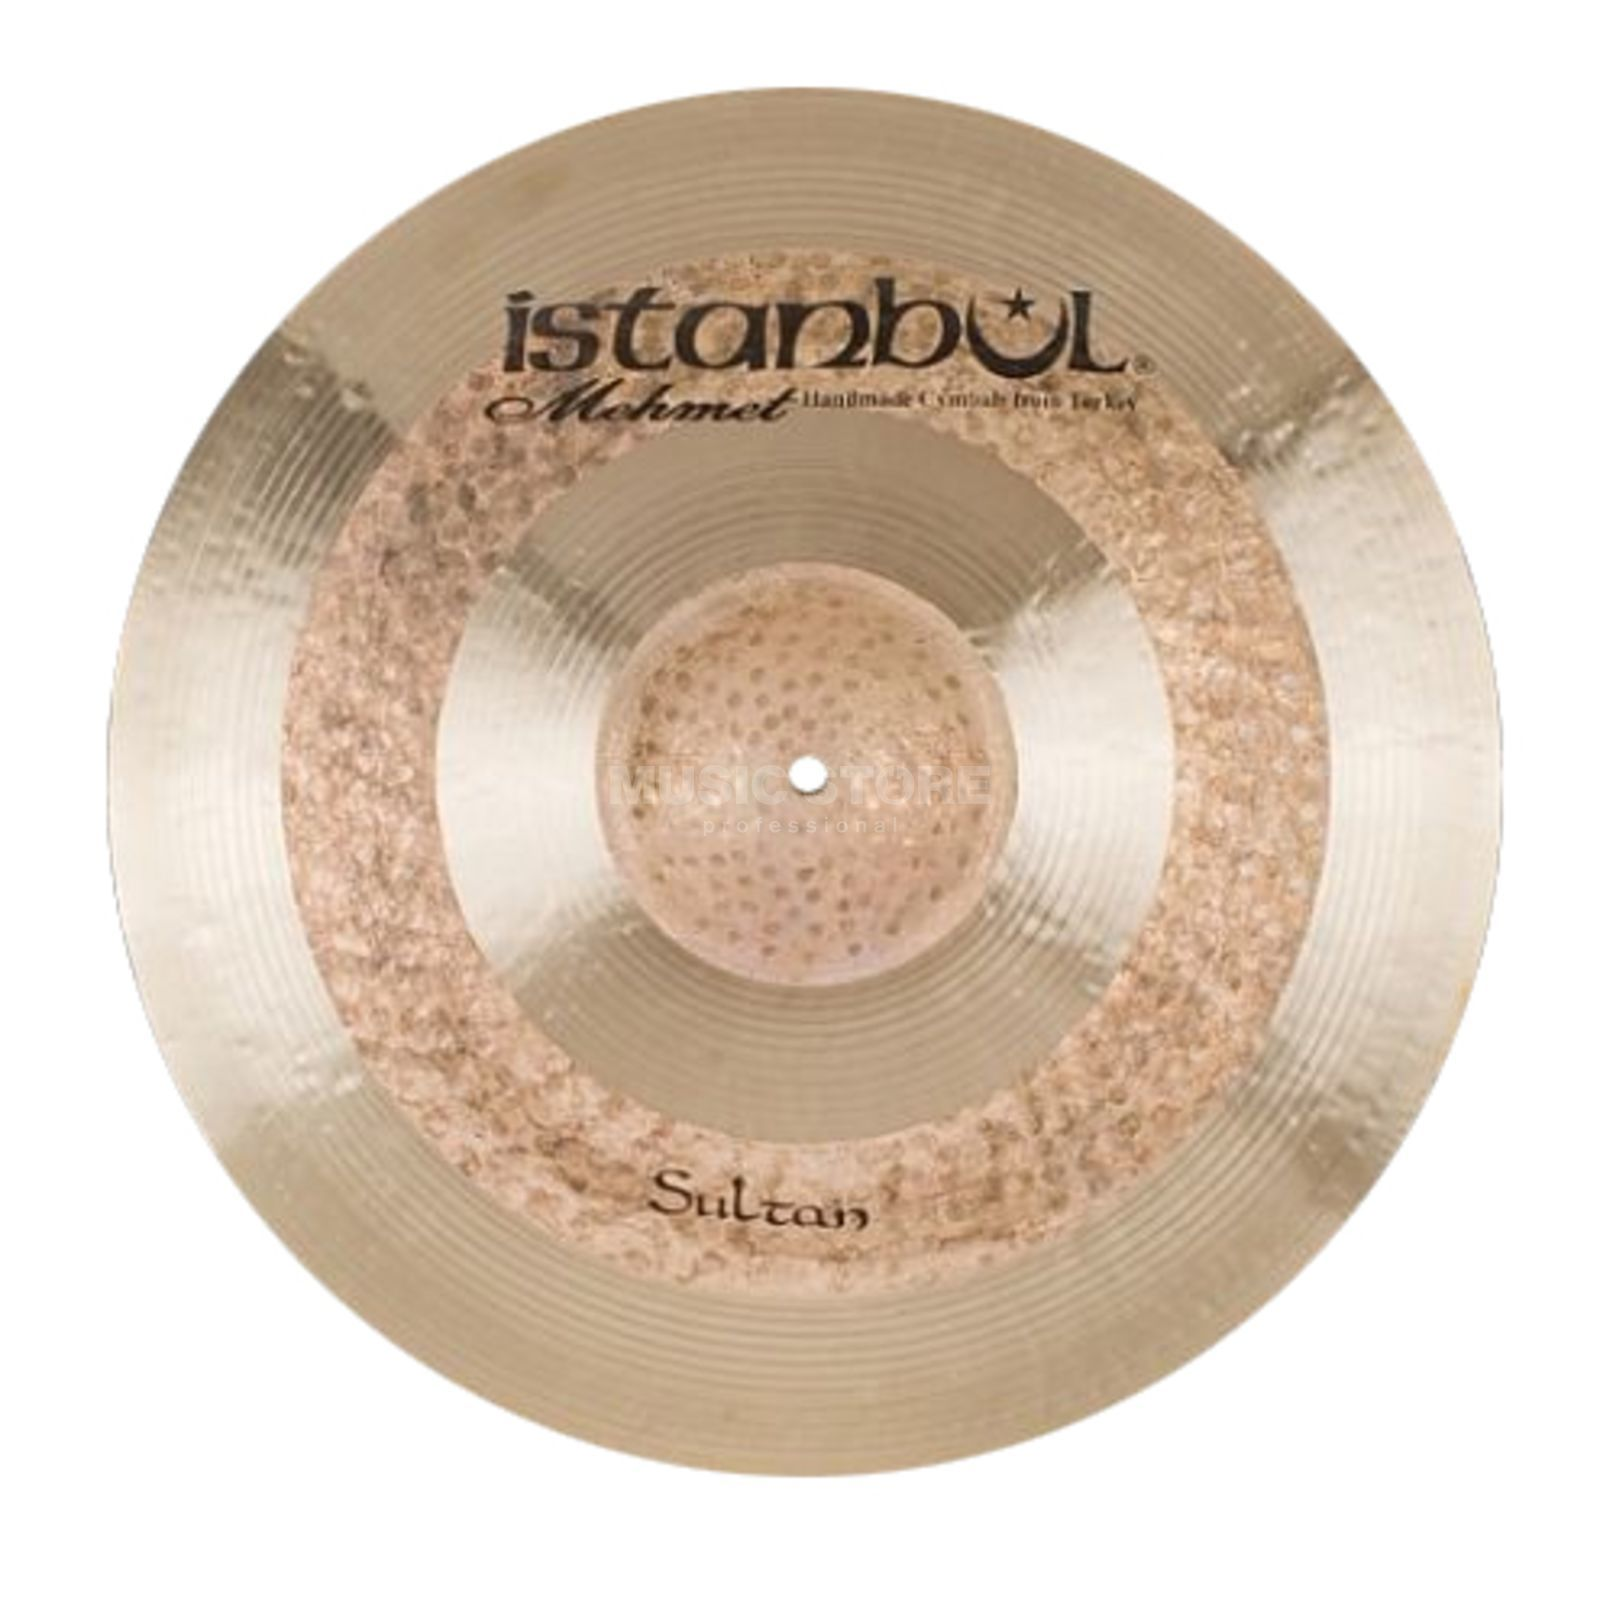 "Istanbul Sultan Thin Crash 17"", CTS18 Produktbillede"